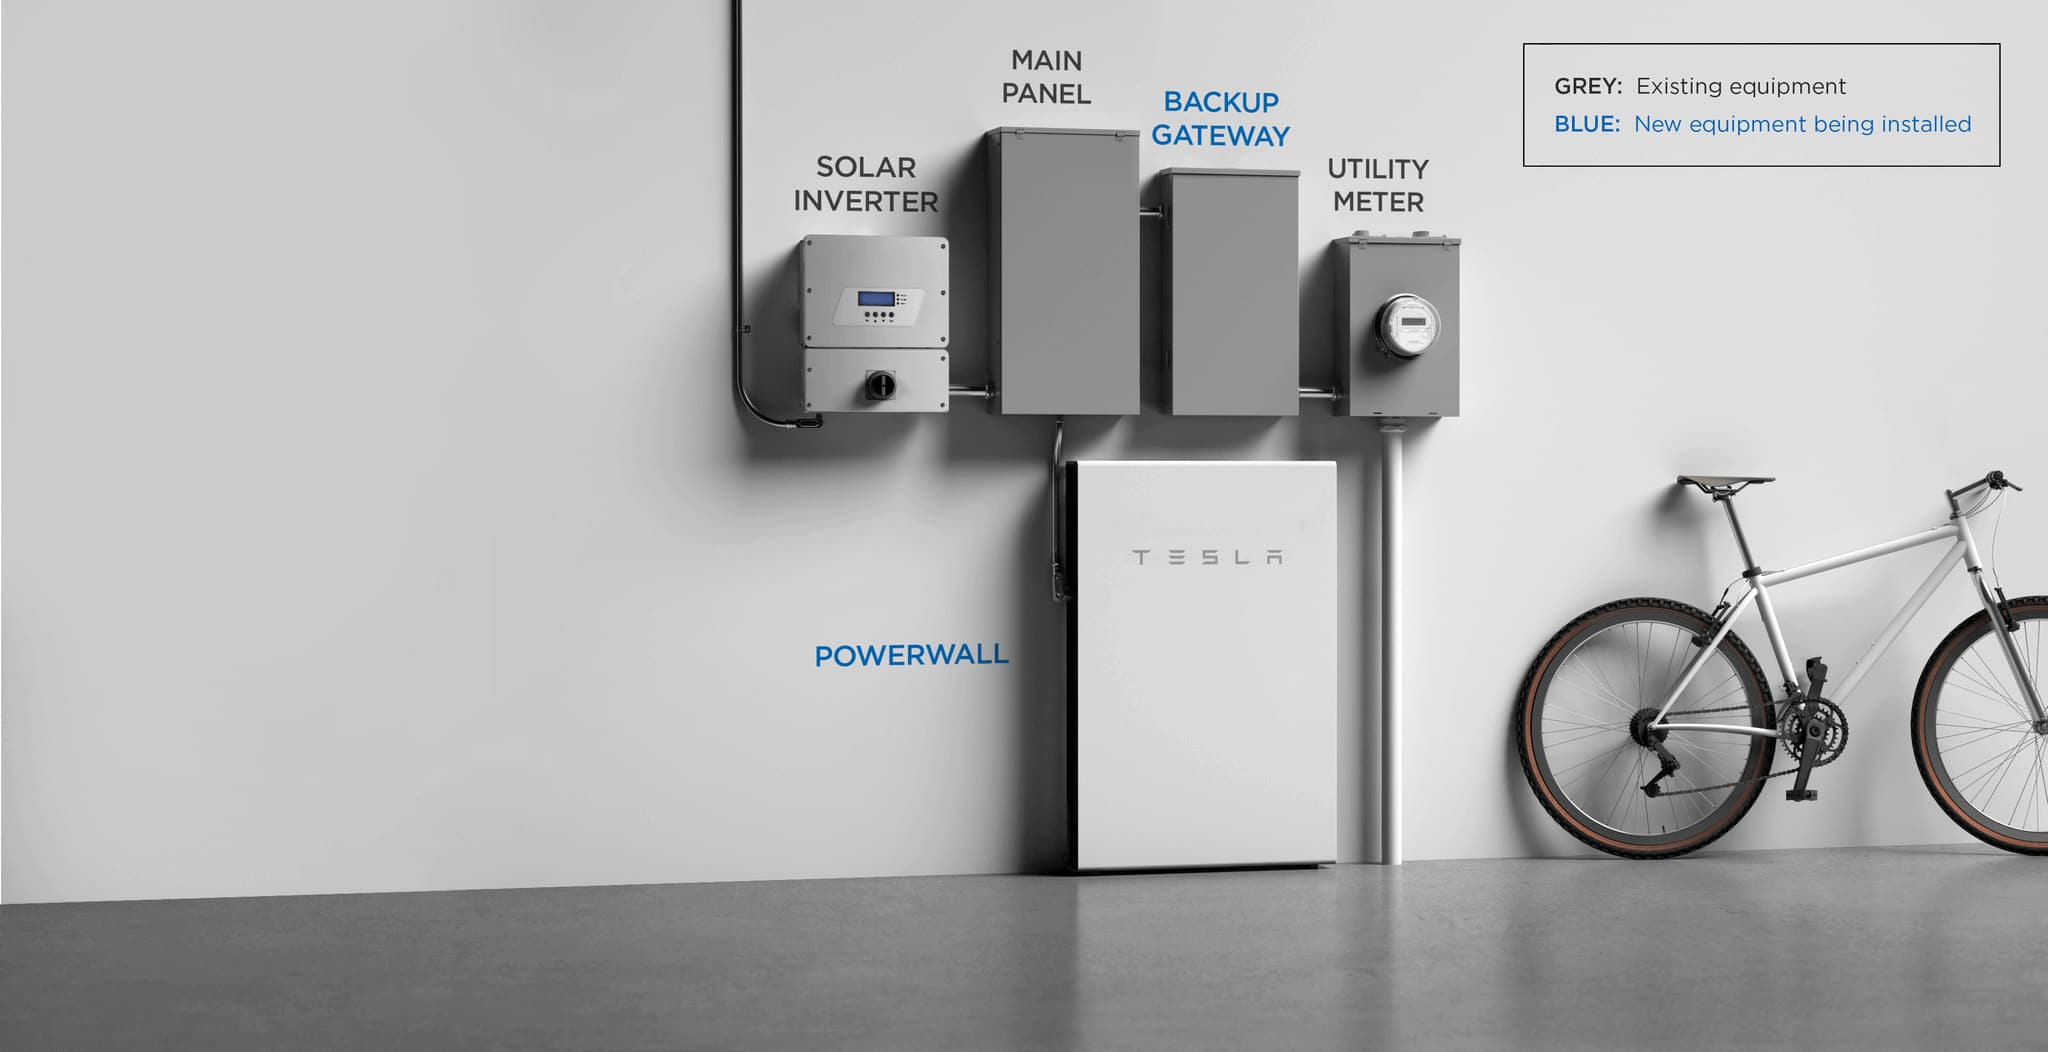 Powerwall on backup generator wiring diagram